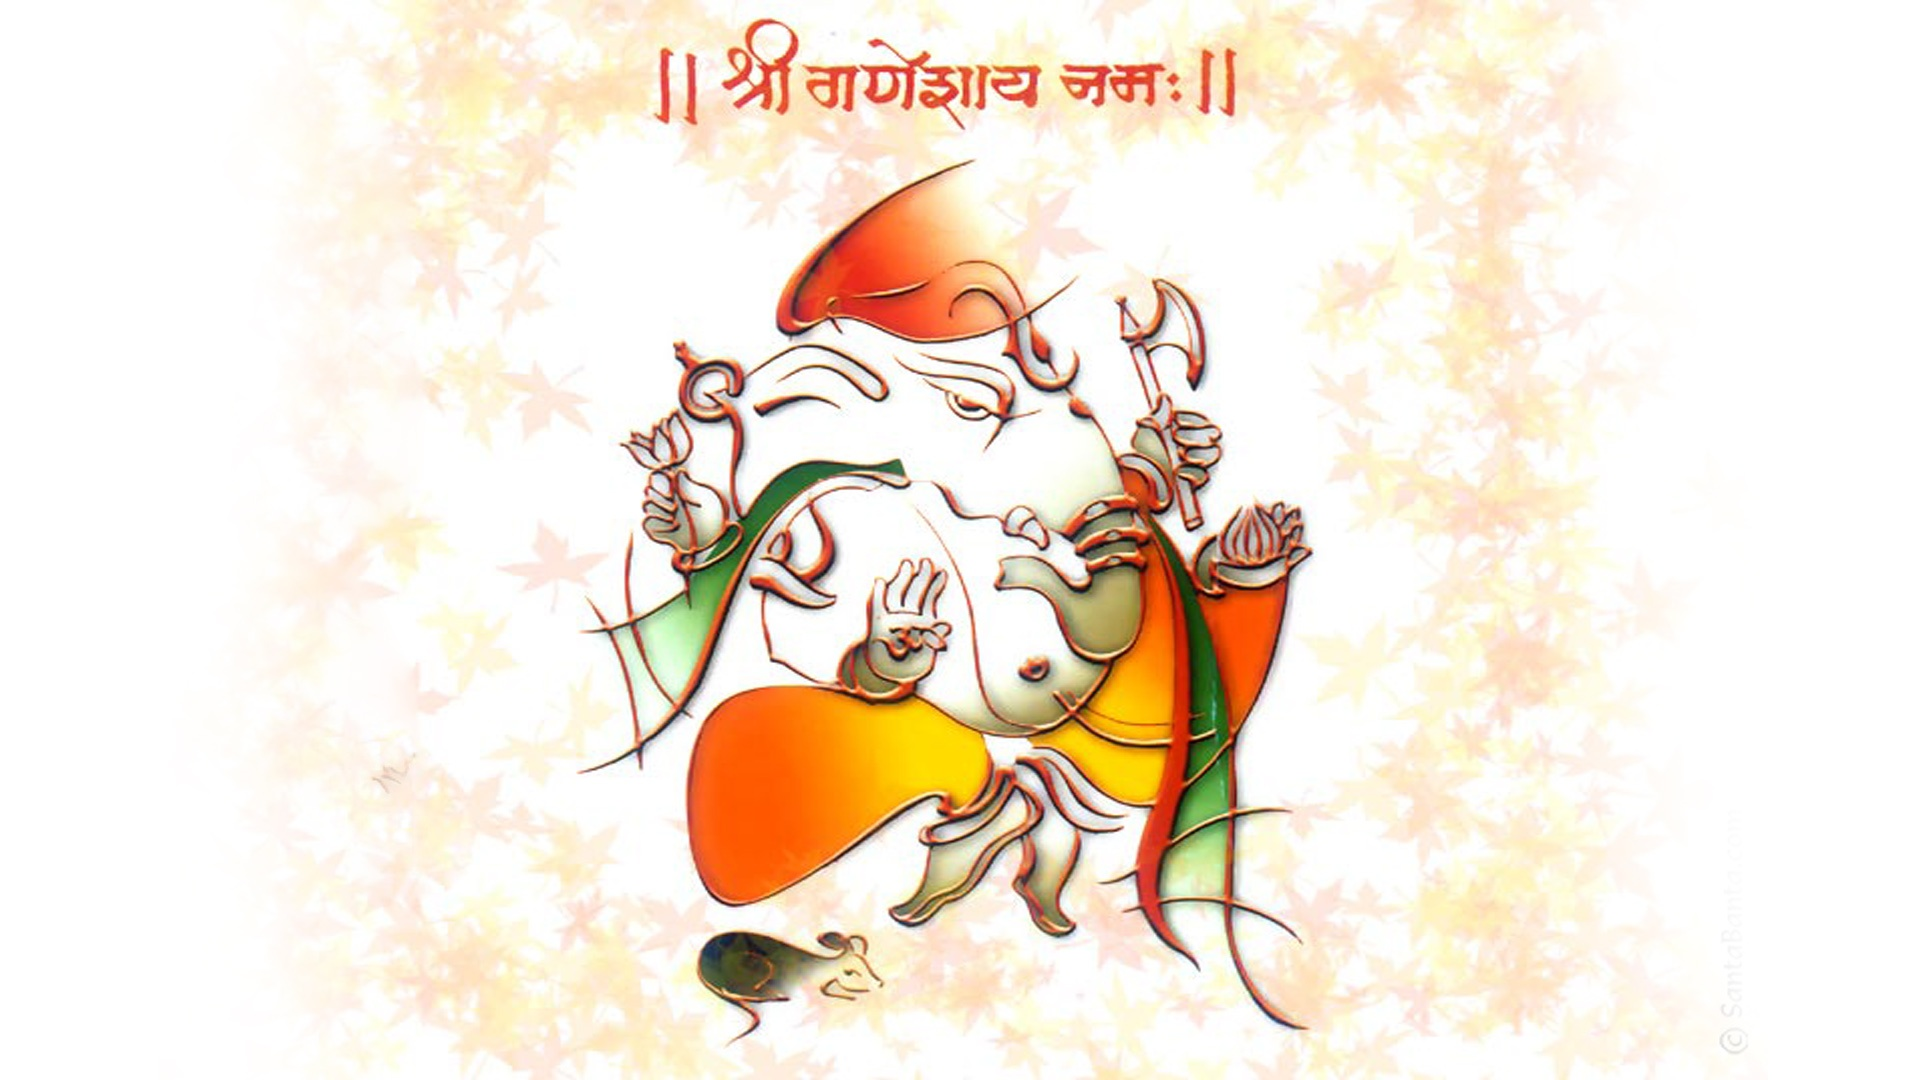 Vinayaka Chavithi Hd Wallpapers Shri Ganesh Colorful Wallpapers 1920x1080 332541